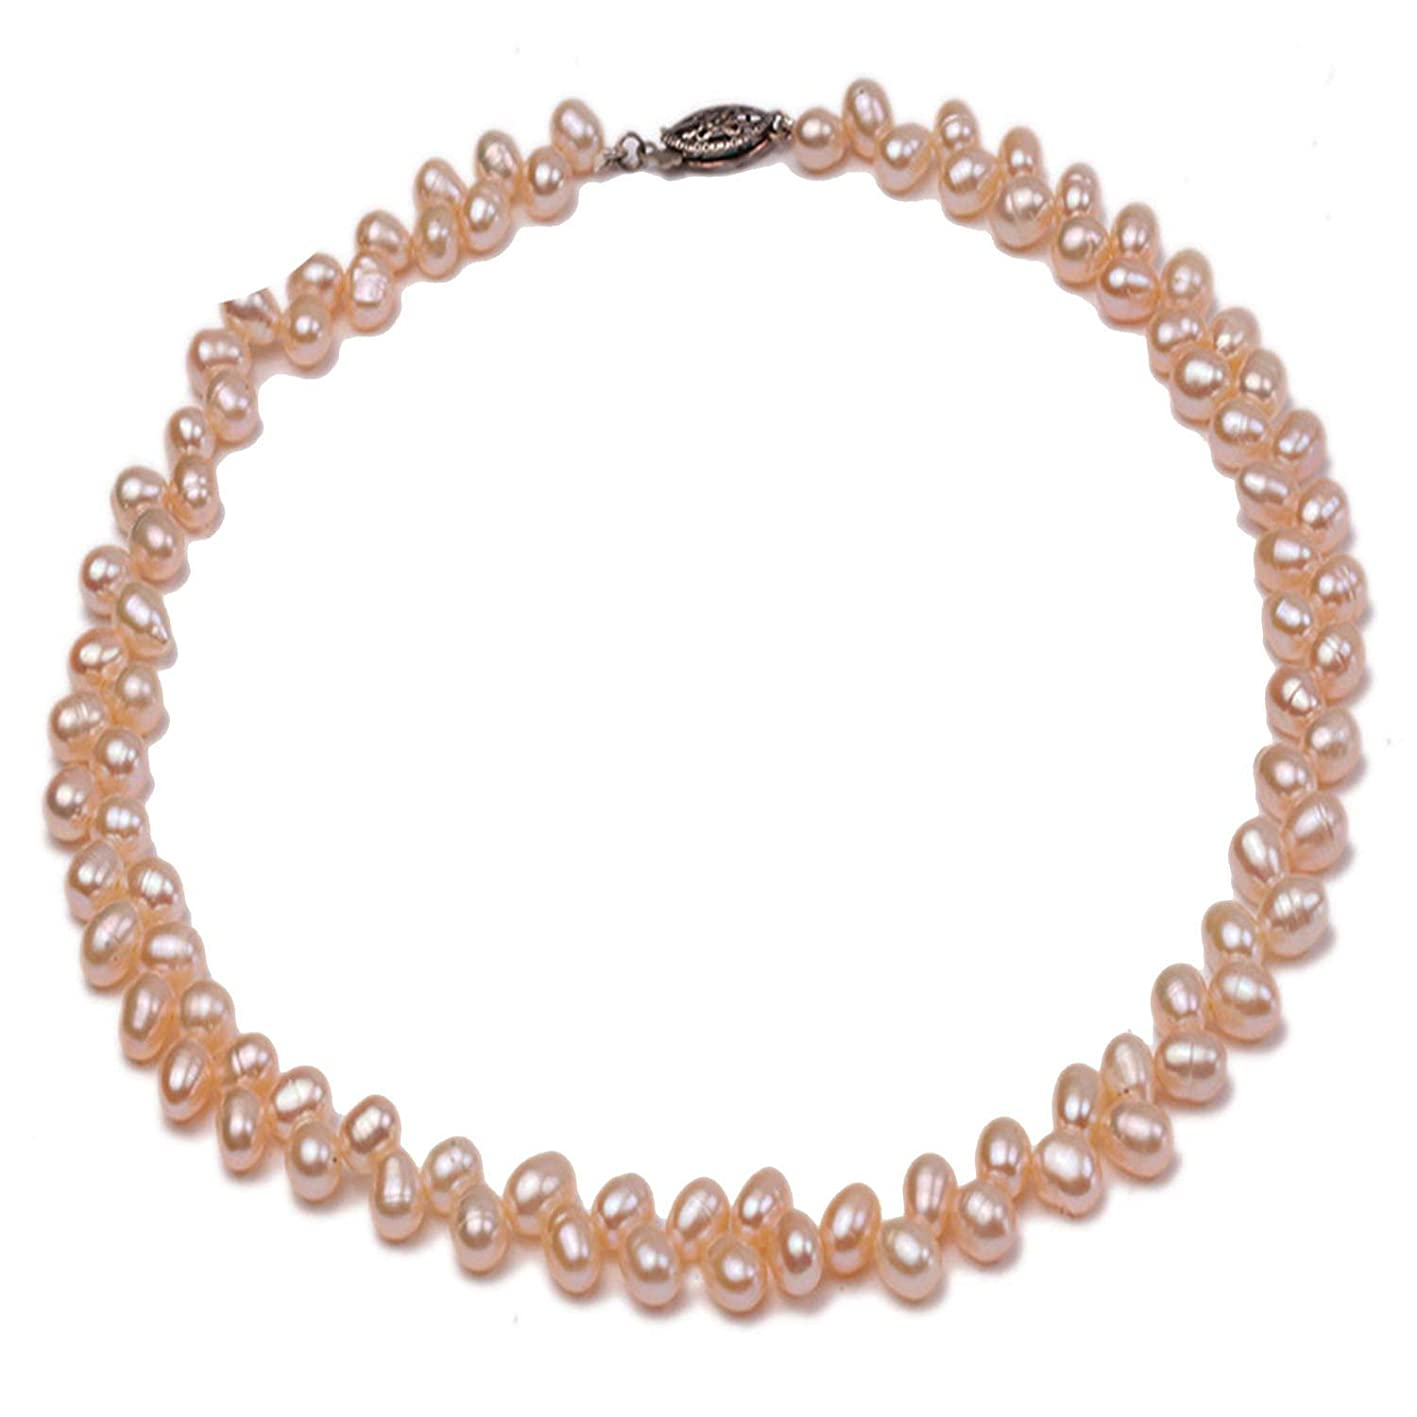 Love-mebetter Natural Choker Necklace 5.5-7mm Pink Pearl Necklace Wheat-Ear-Shaped Freshwater Pearl Single Strand Necklace,Pink 15.5 Inches gtkmtwvuobh107